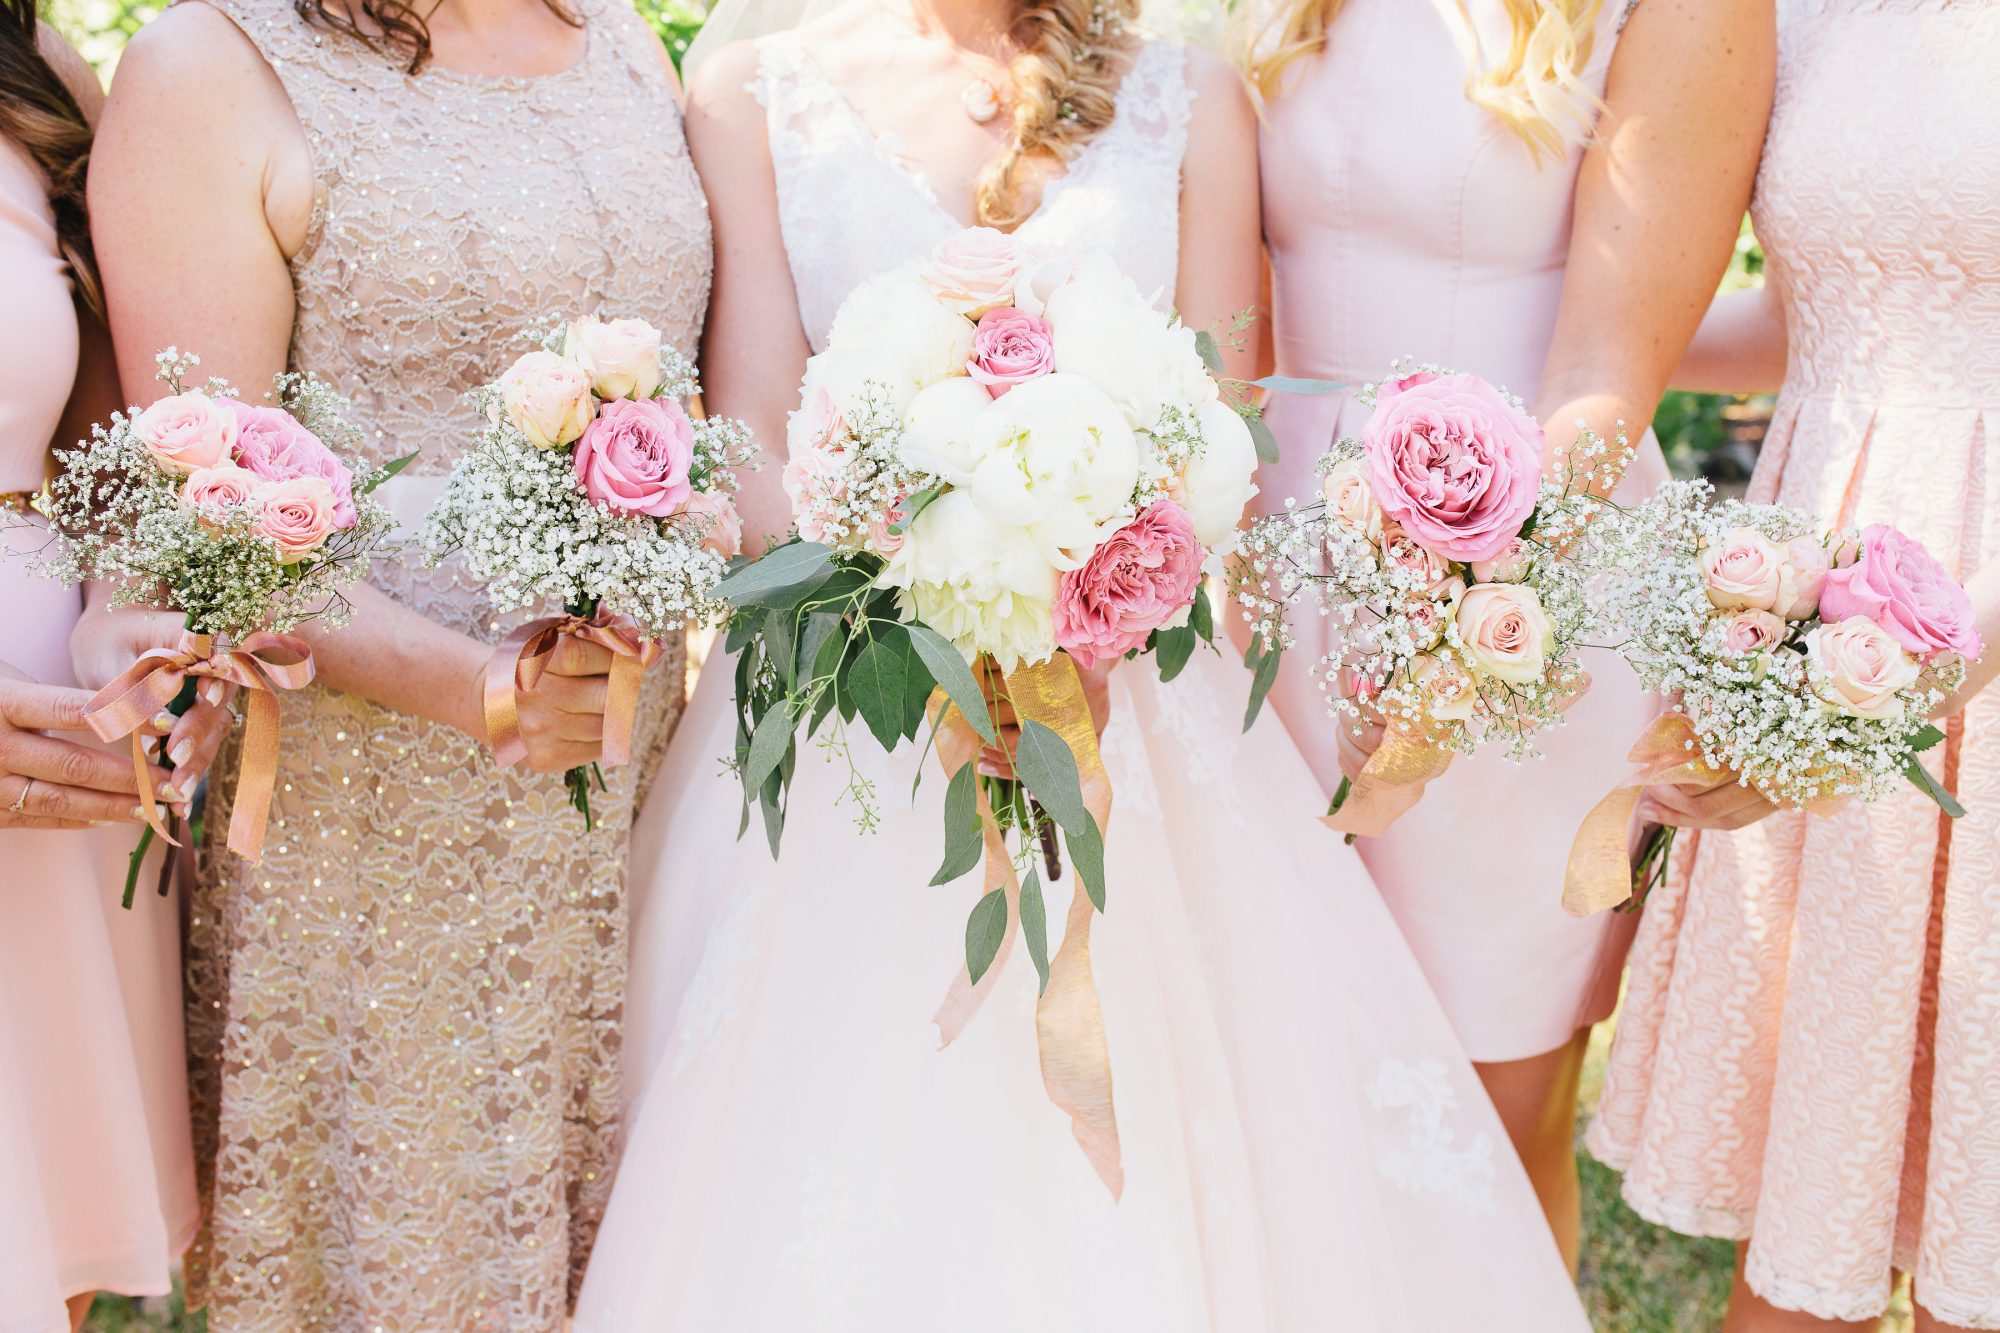 What to Splurge and Save On for a Wedding